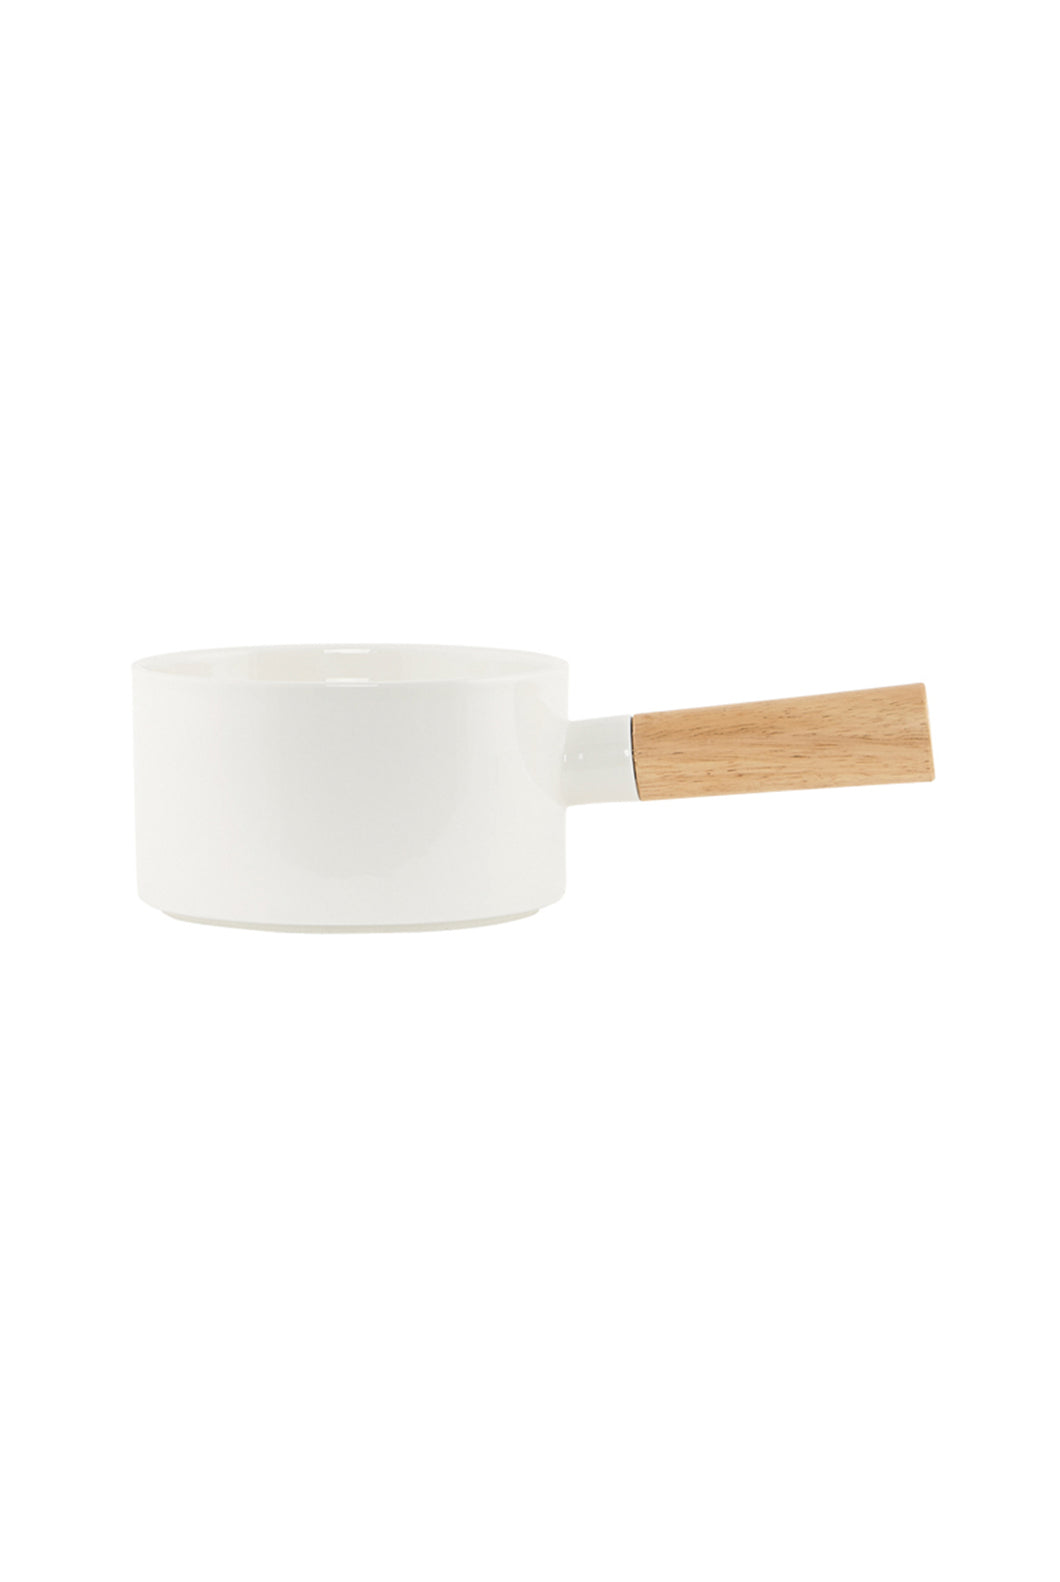 House Doctor - Porcelain Saucepan with Wooden Handle - Medium - White